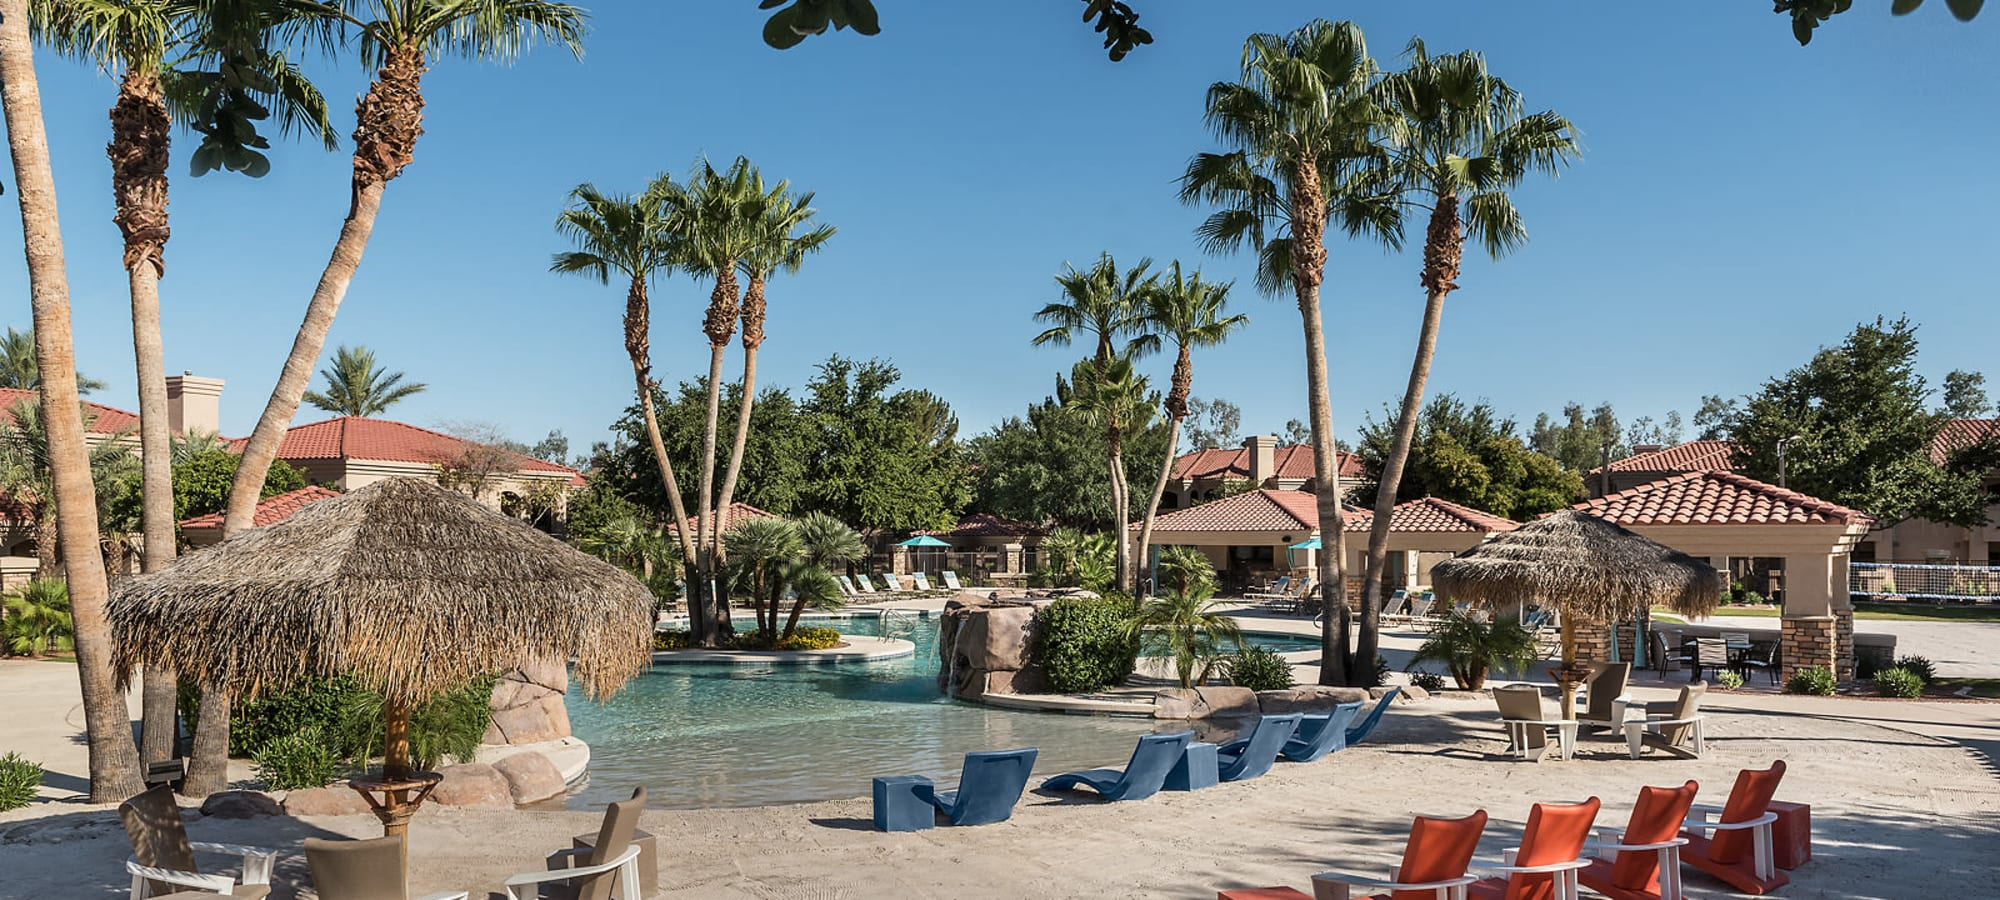 Luxury swimming pool at San Cervantes in Chandler, Arizona